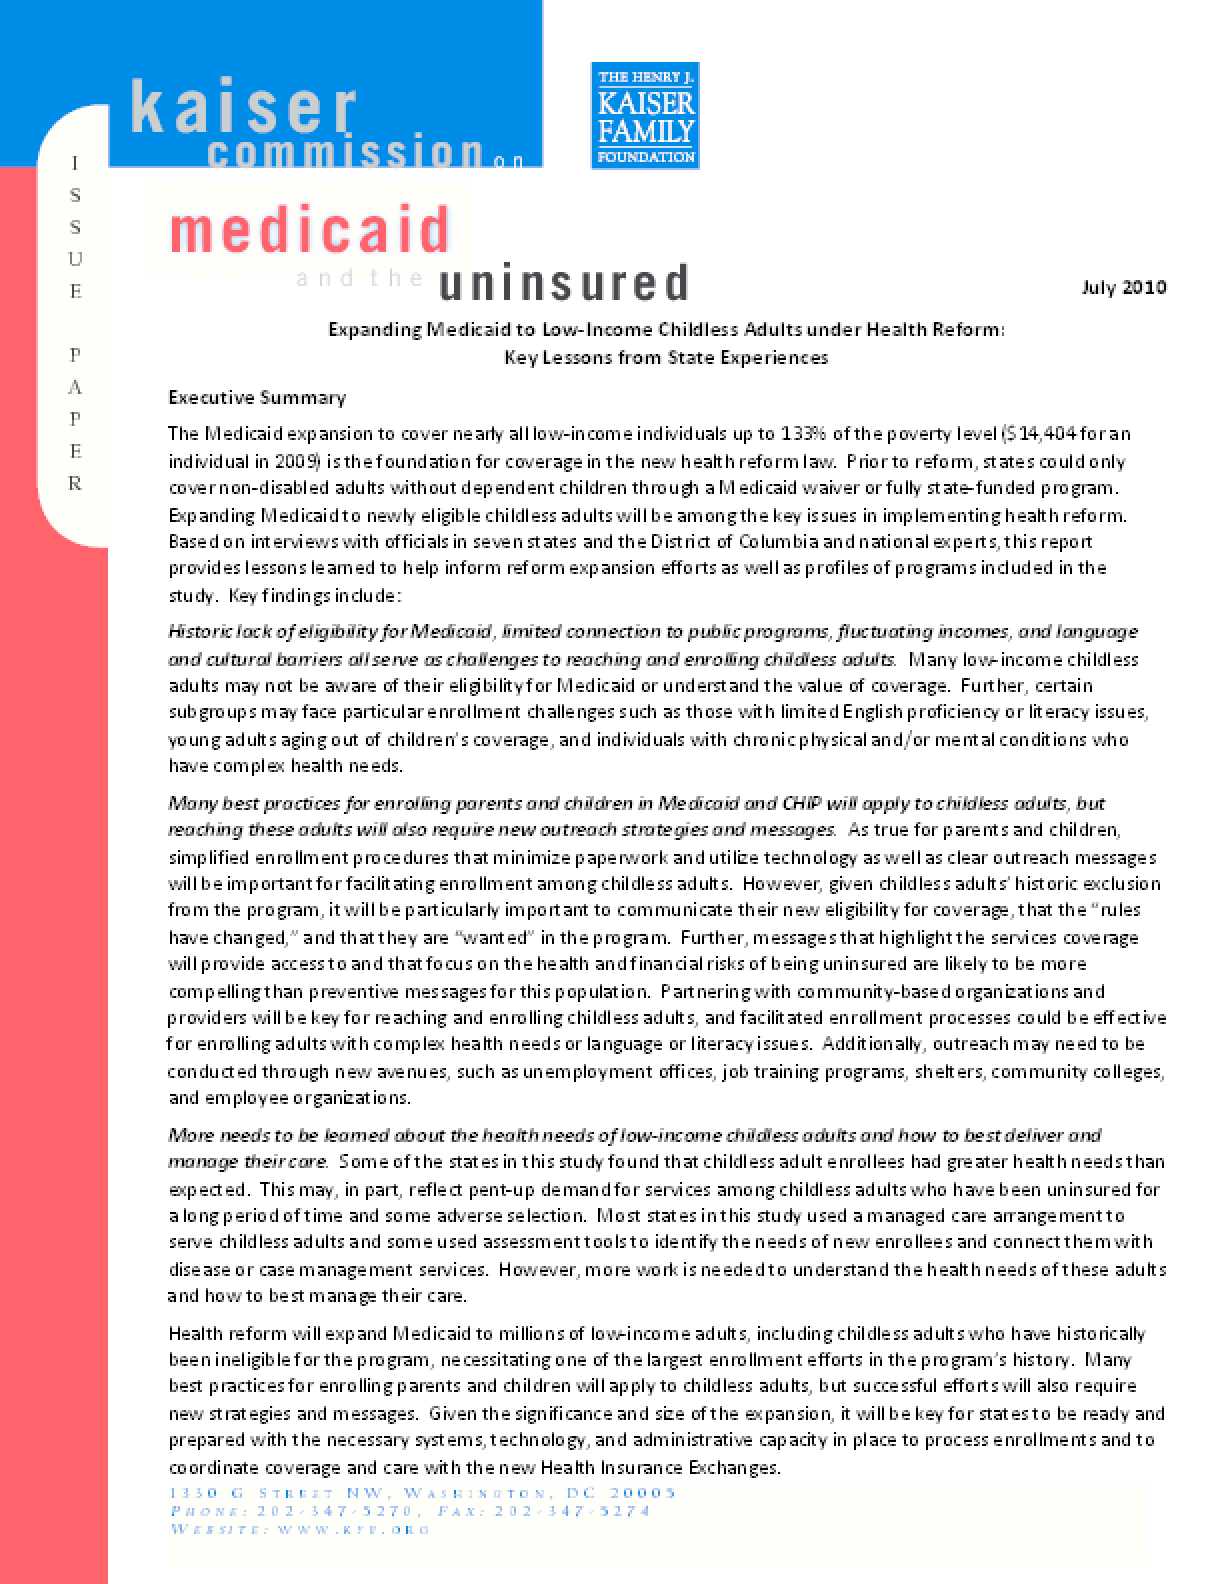 Expanding Medicaid to Low-Income Childless Adults Under Health Reform: Key Lessons From State Experiences